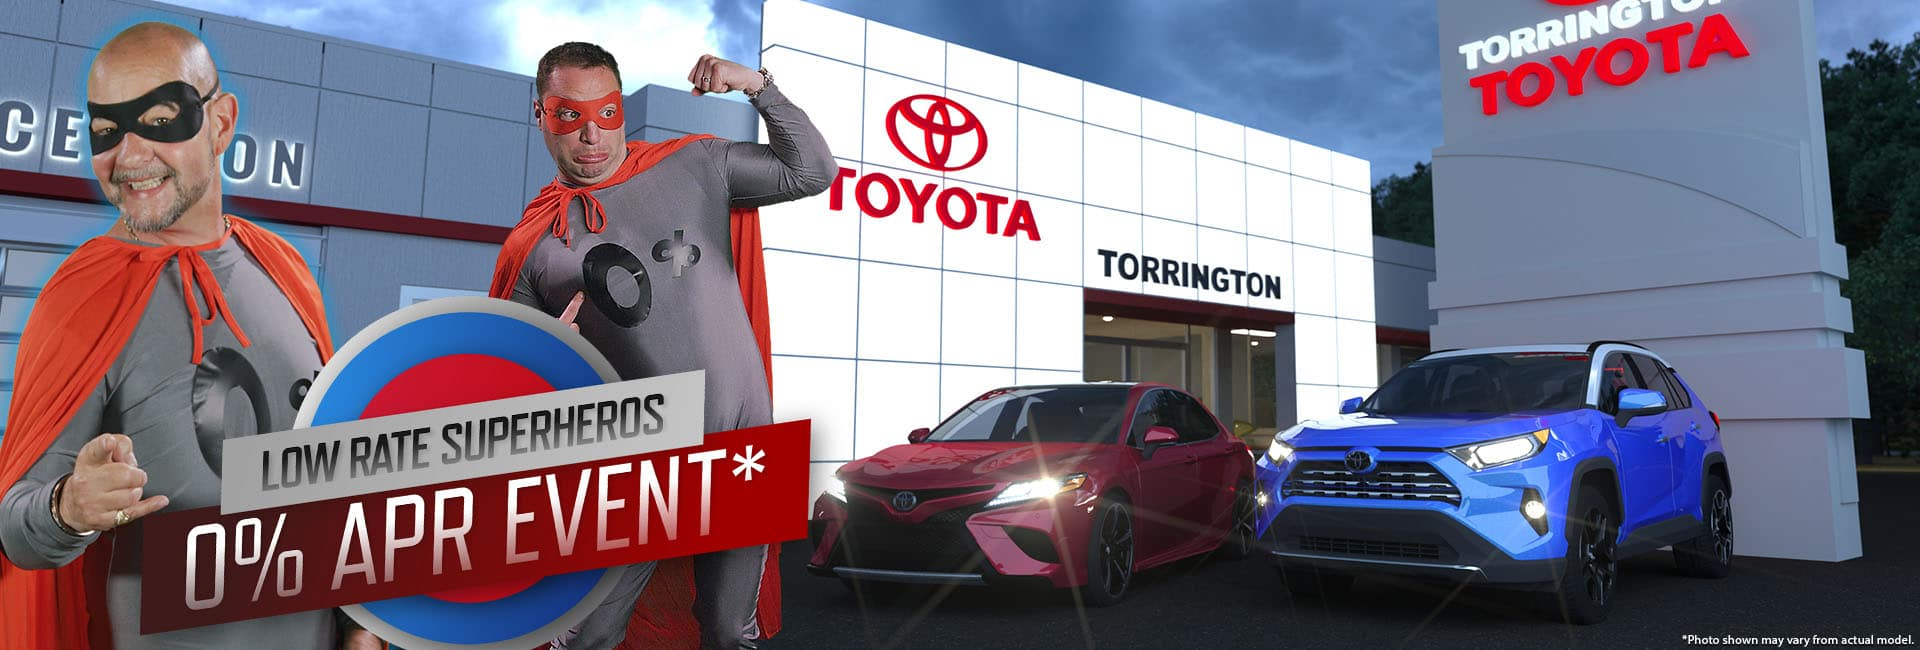 Low rate superheros Dave and Danny of Torrington Toyota dressed in costume, announce finance rate deals zero percent interest on select certified pre-owned Toyotas, including Rav4 and Camry. Please read important disclaimer at the bottom of the page.